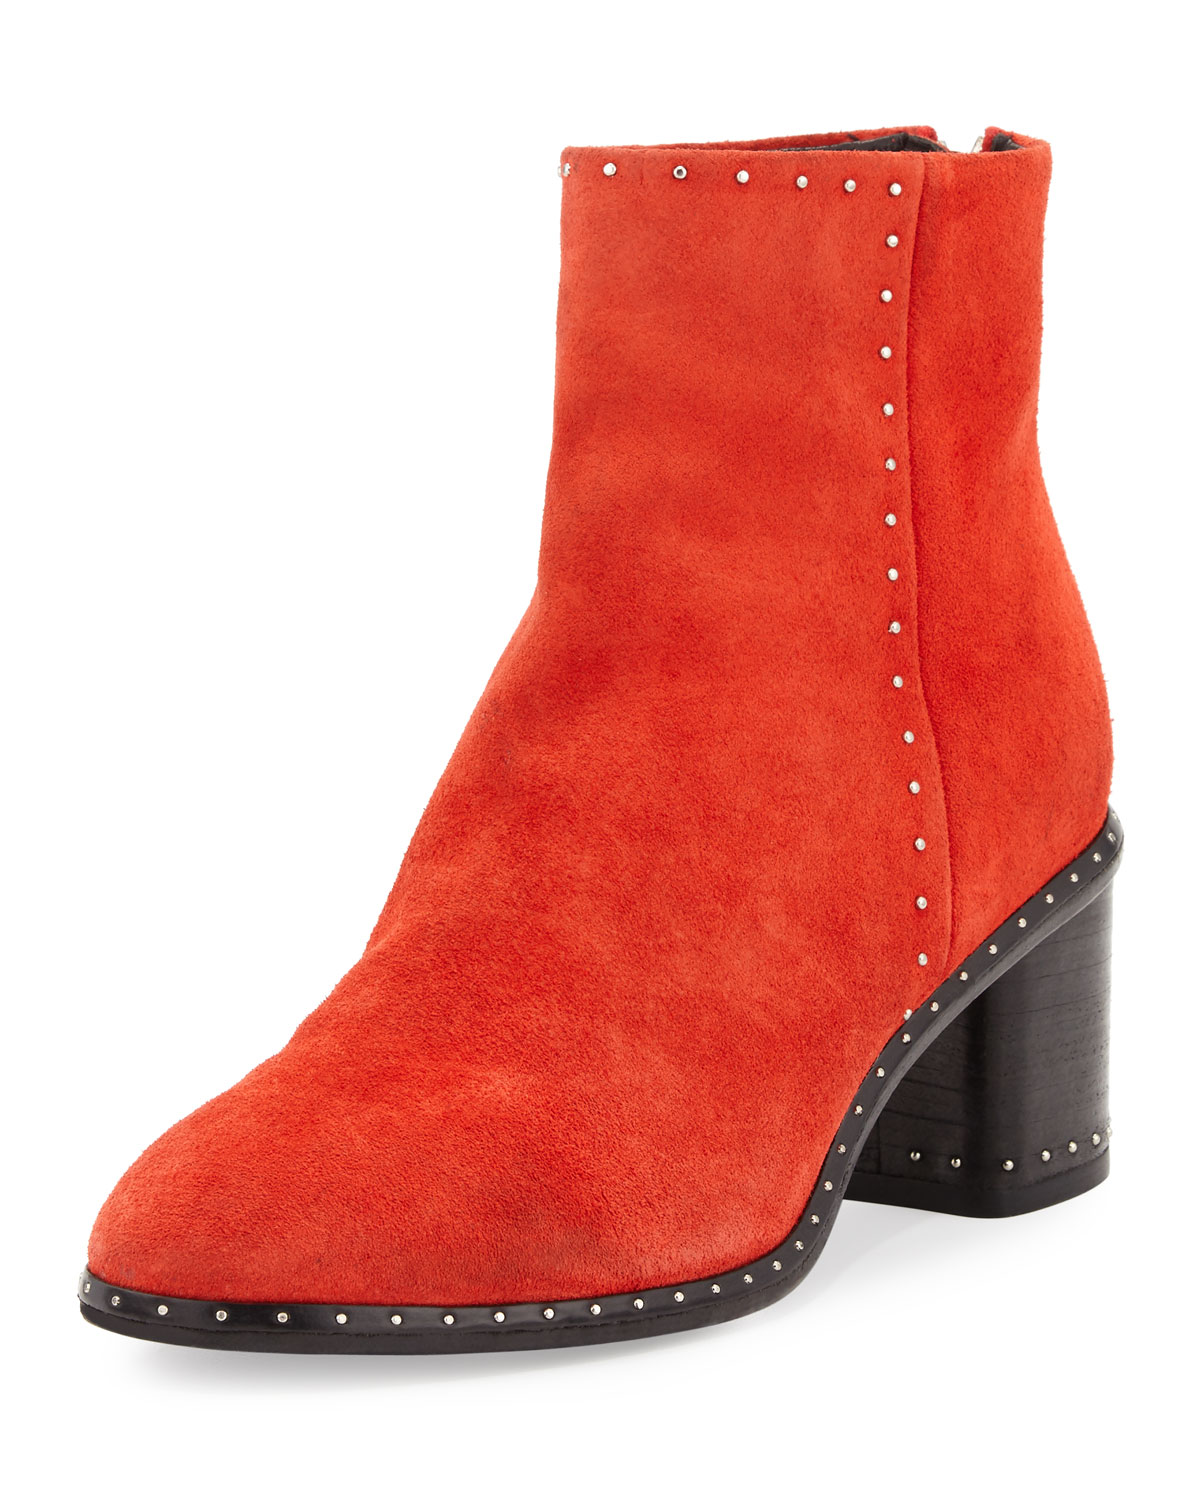 255b41eff65 Rag   Bone Willow Studded Leather Ankle Boot